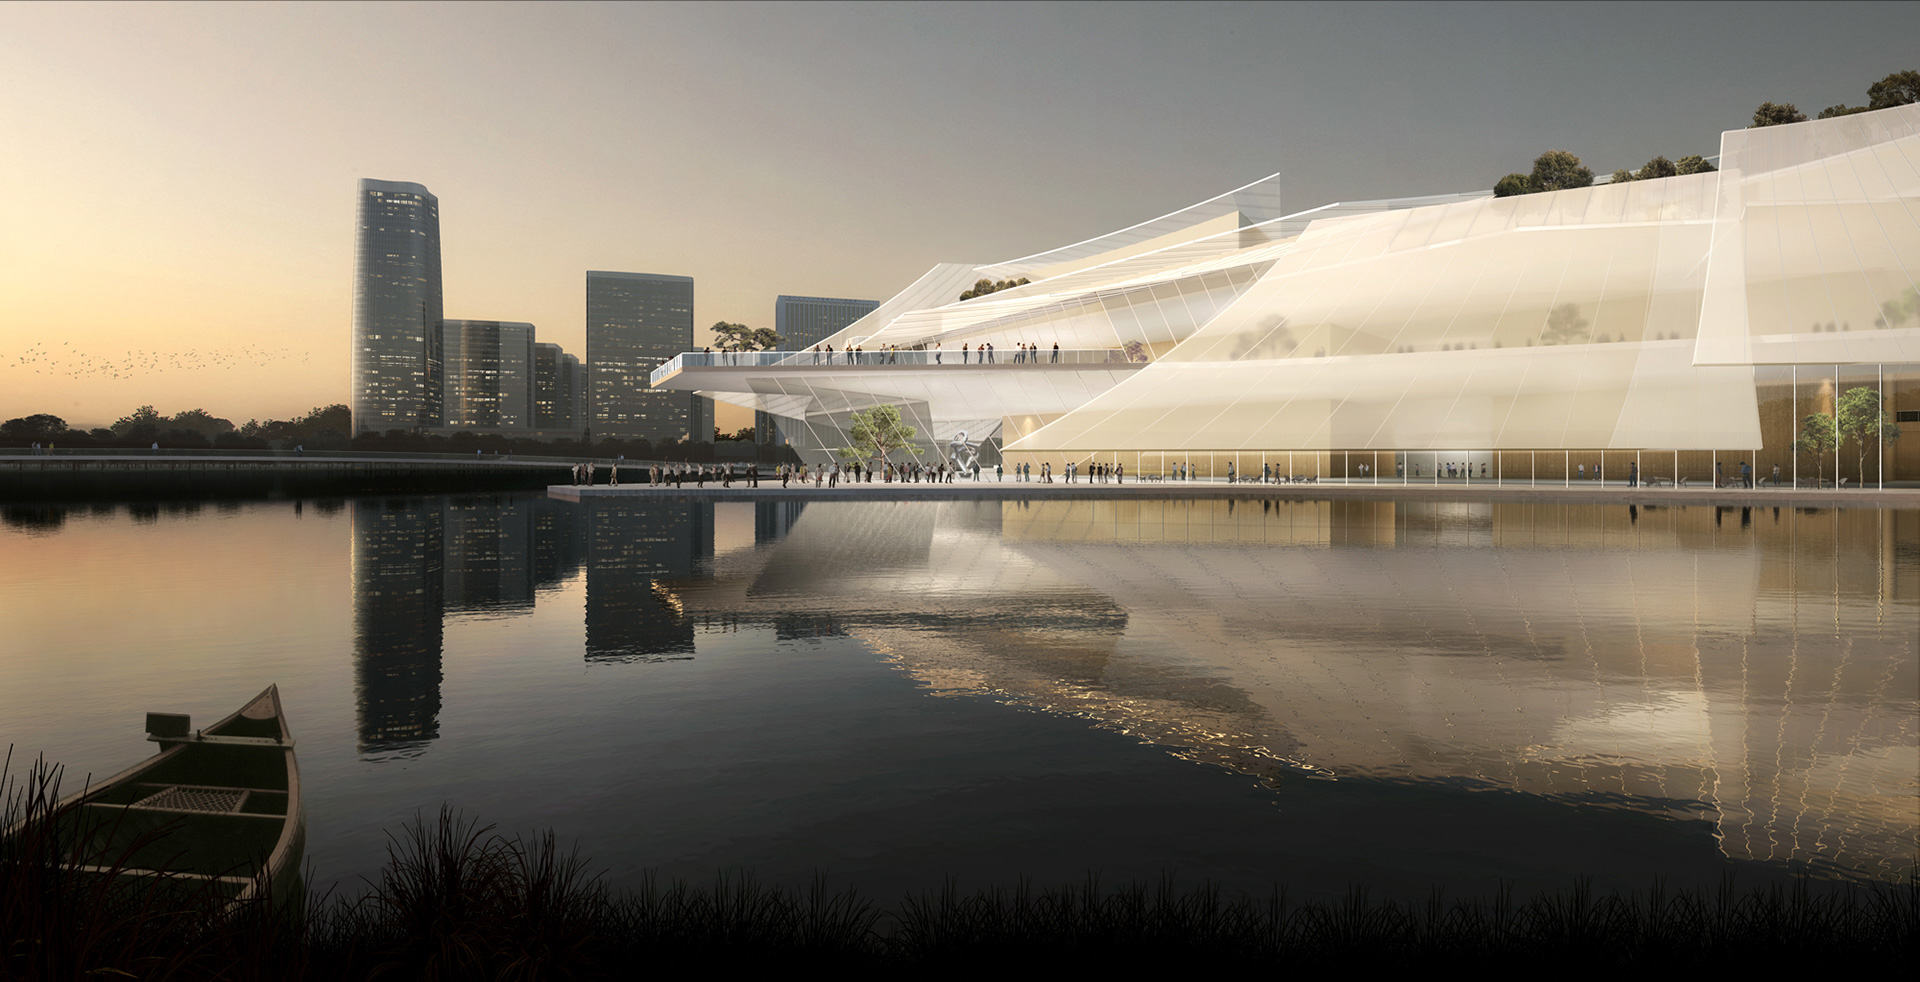 The façade is formed by layering of glass sails in an ethereal composition | Yiwu Grand Theater | MAD Architects | STIR